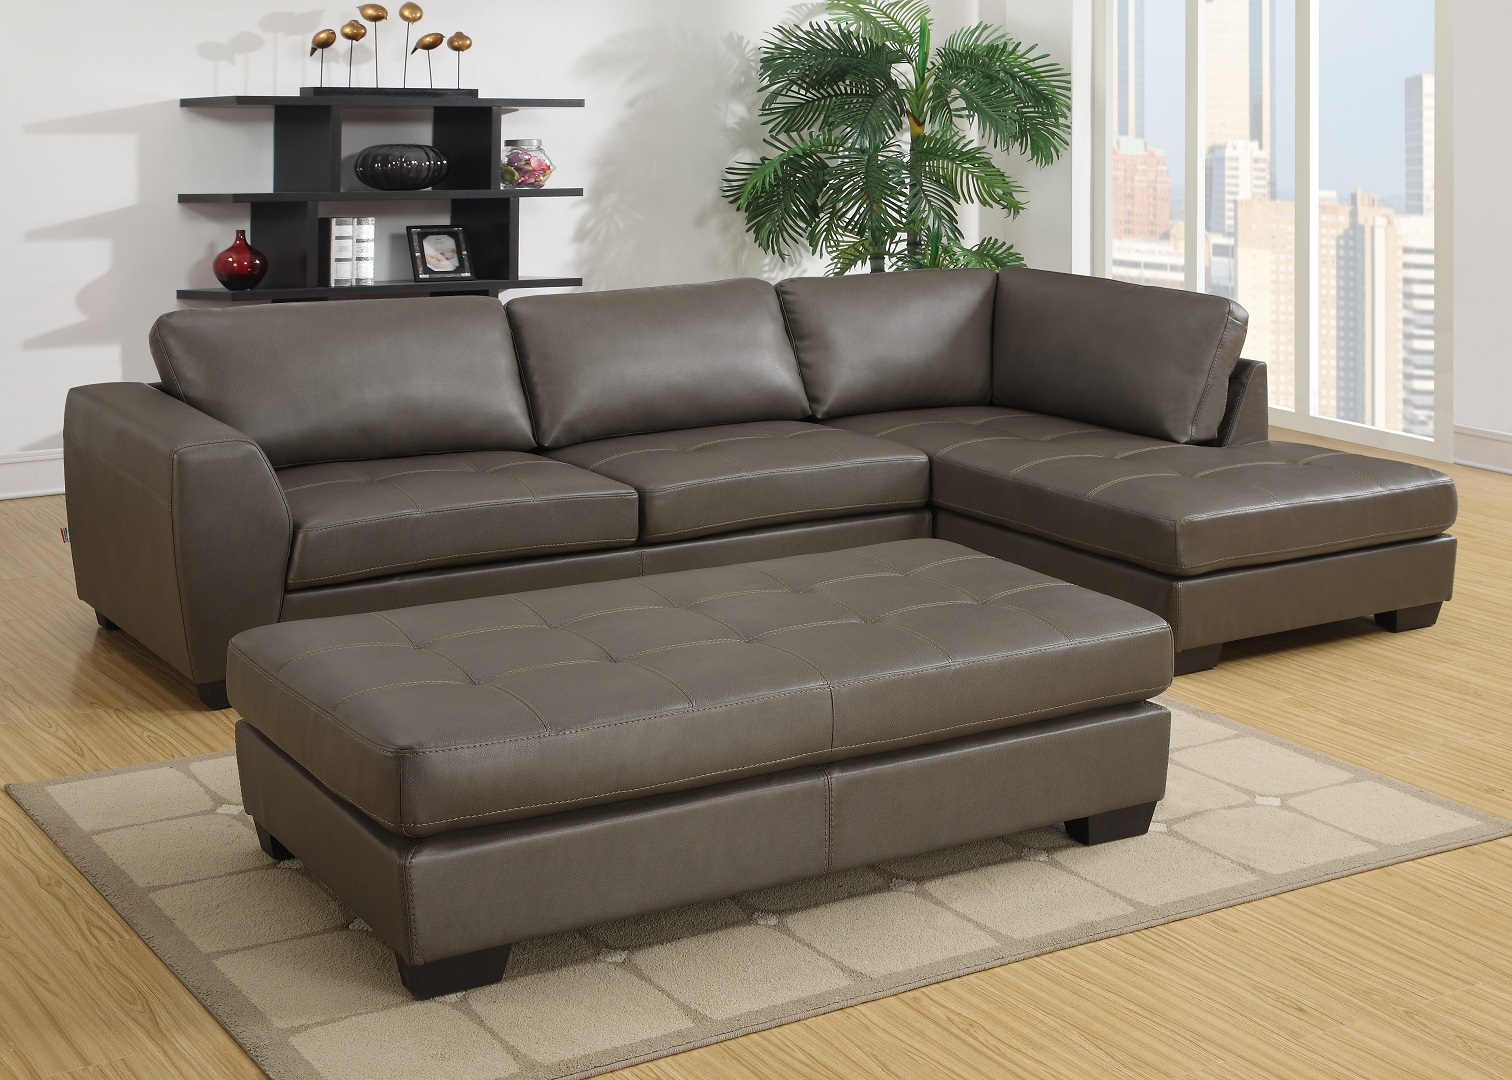 GL6609 Liverpool Sectional Grey